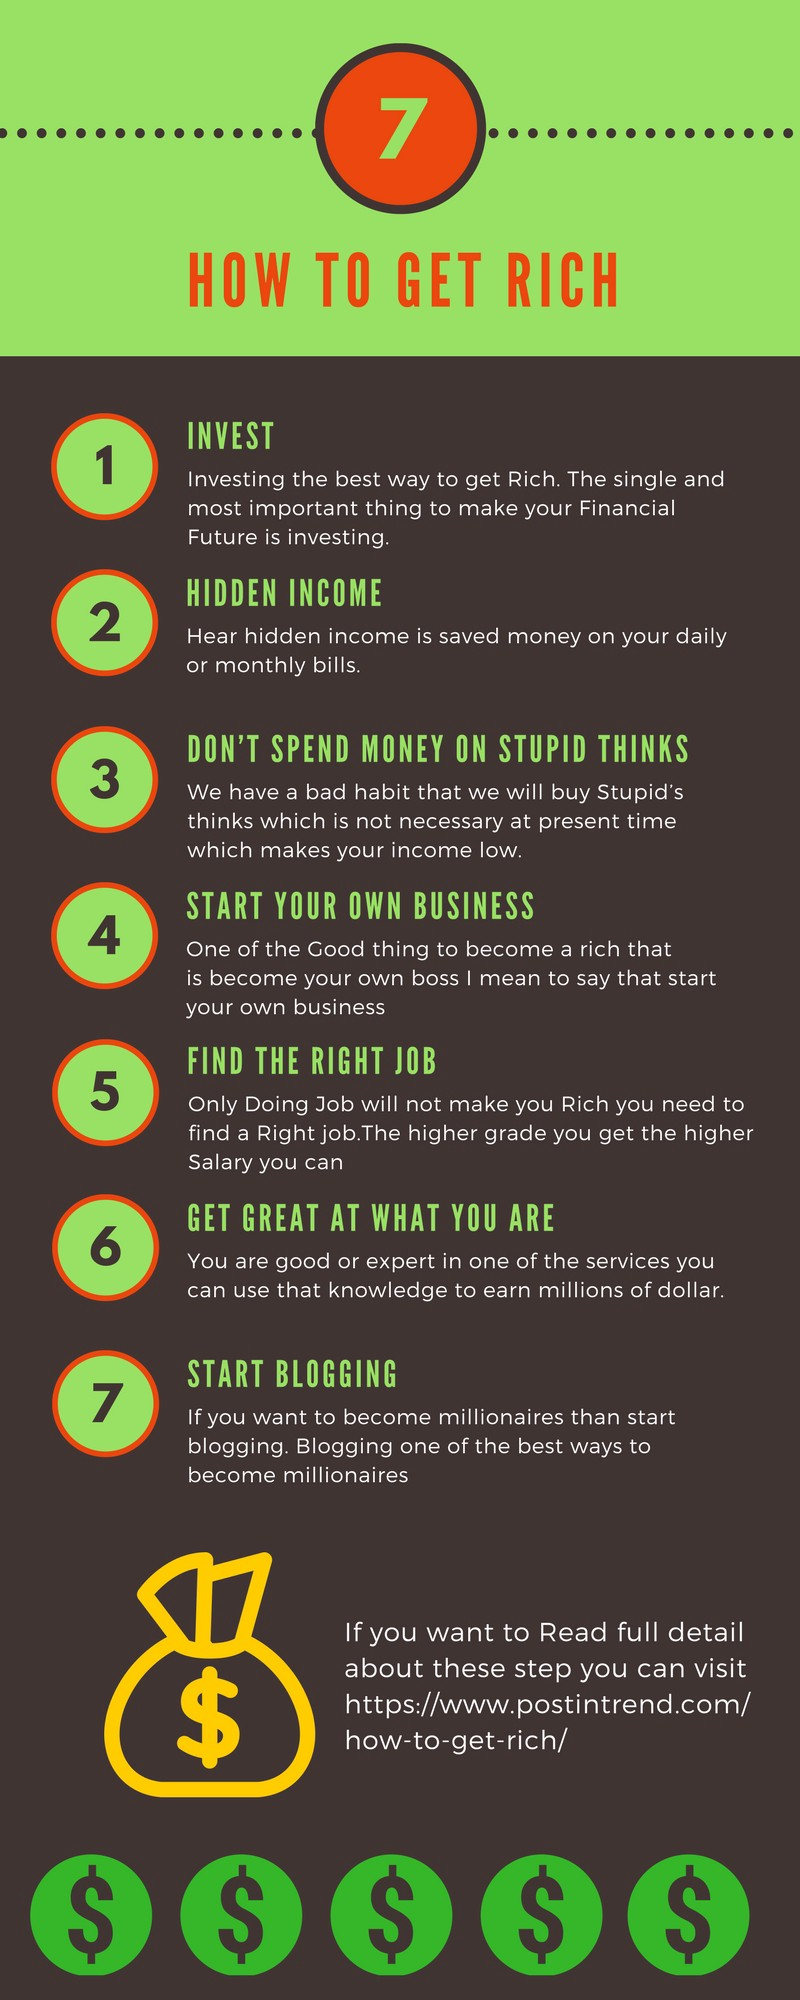 How To Get Rich: 7 Best Proven Ways To Get Rich 2018